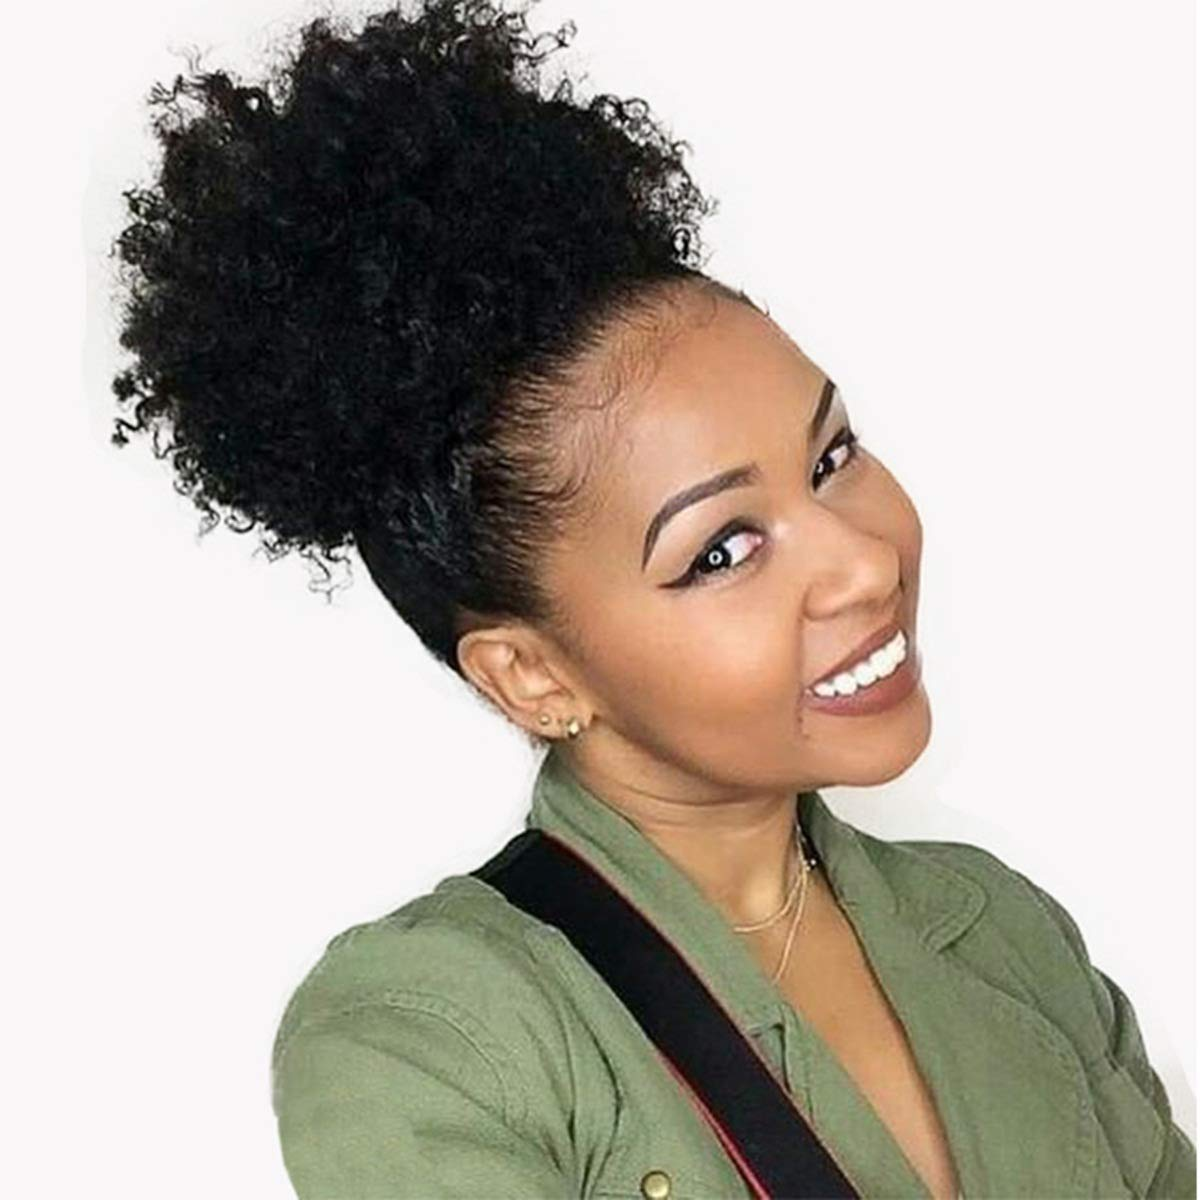 Amazon Com Afro Kinky Curly Clip In Ponytail Hair Extensions 4b 4c Human Hair For Black Women 8 Inches Clip In Top Closure Drawstring Ponytail Hair Piece Natural Color 90 Gram Beauty